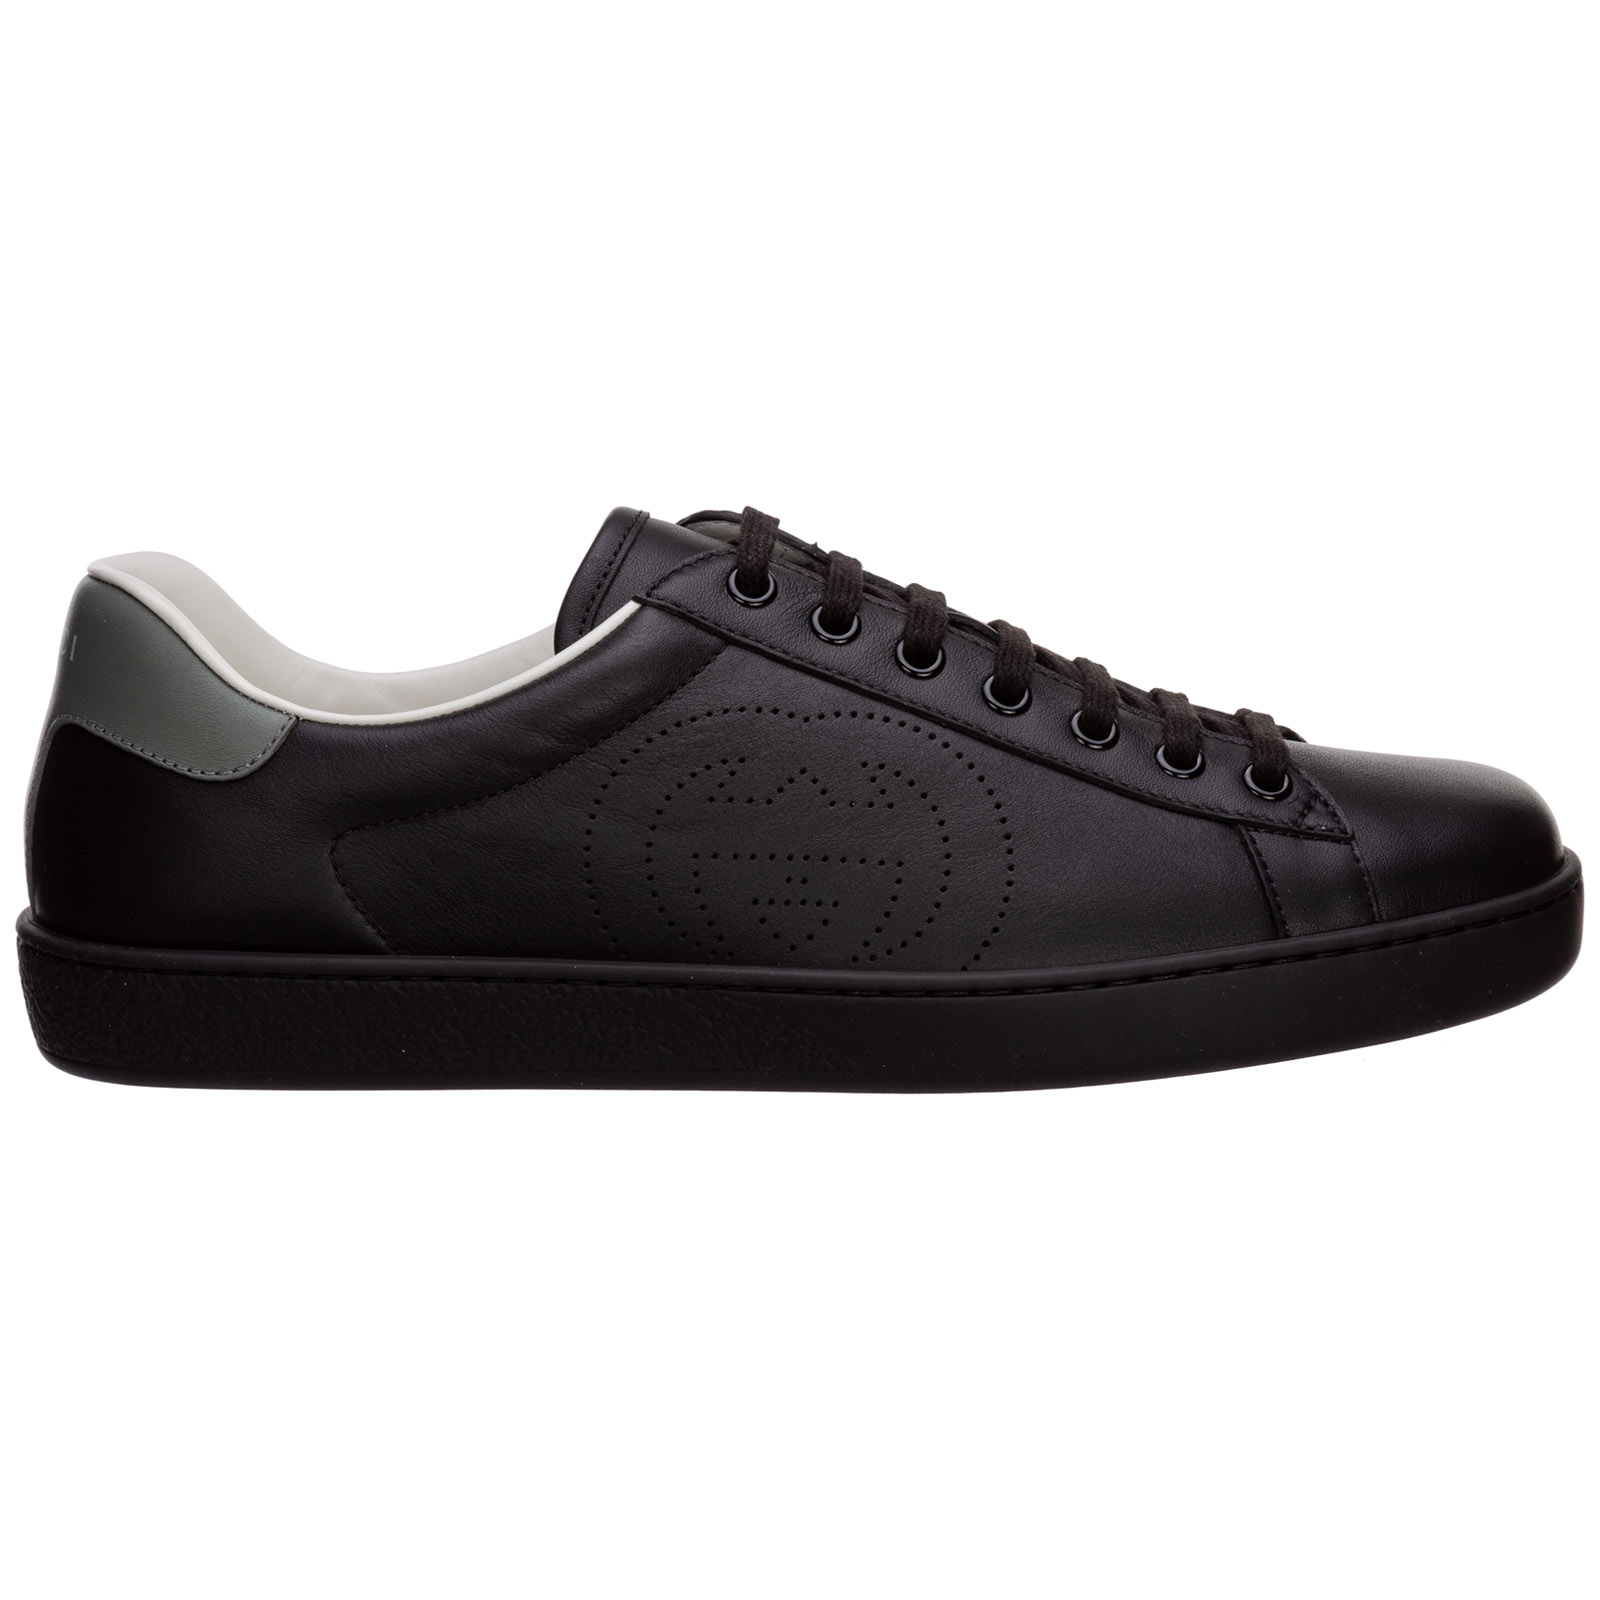 Gucci MEN'S SHOES LEATHER TRAINERS SNEAKERS ACE GG